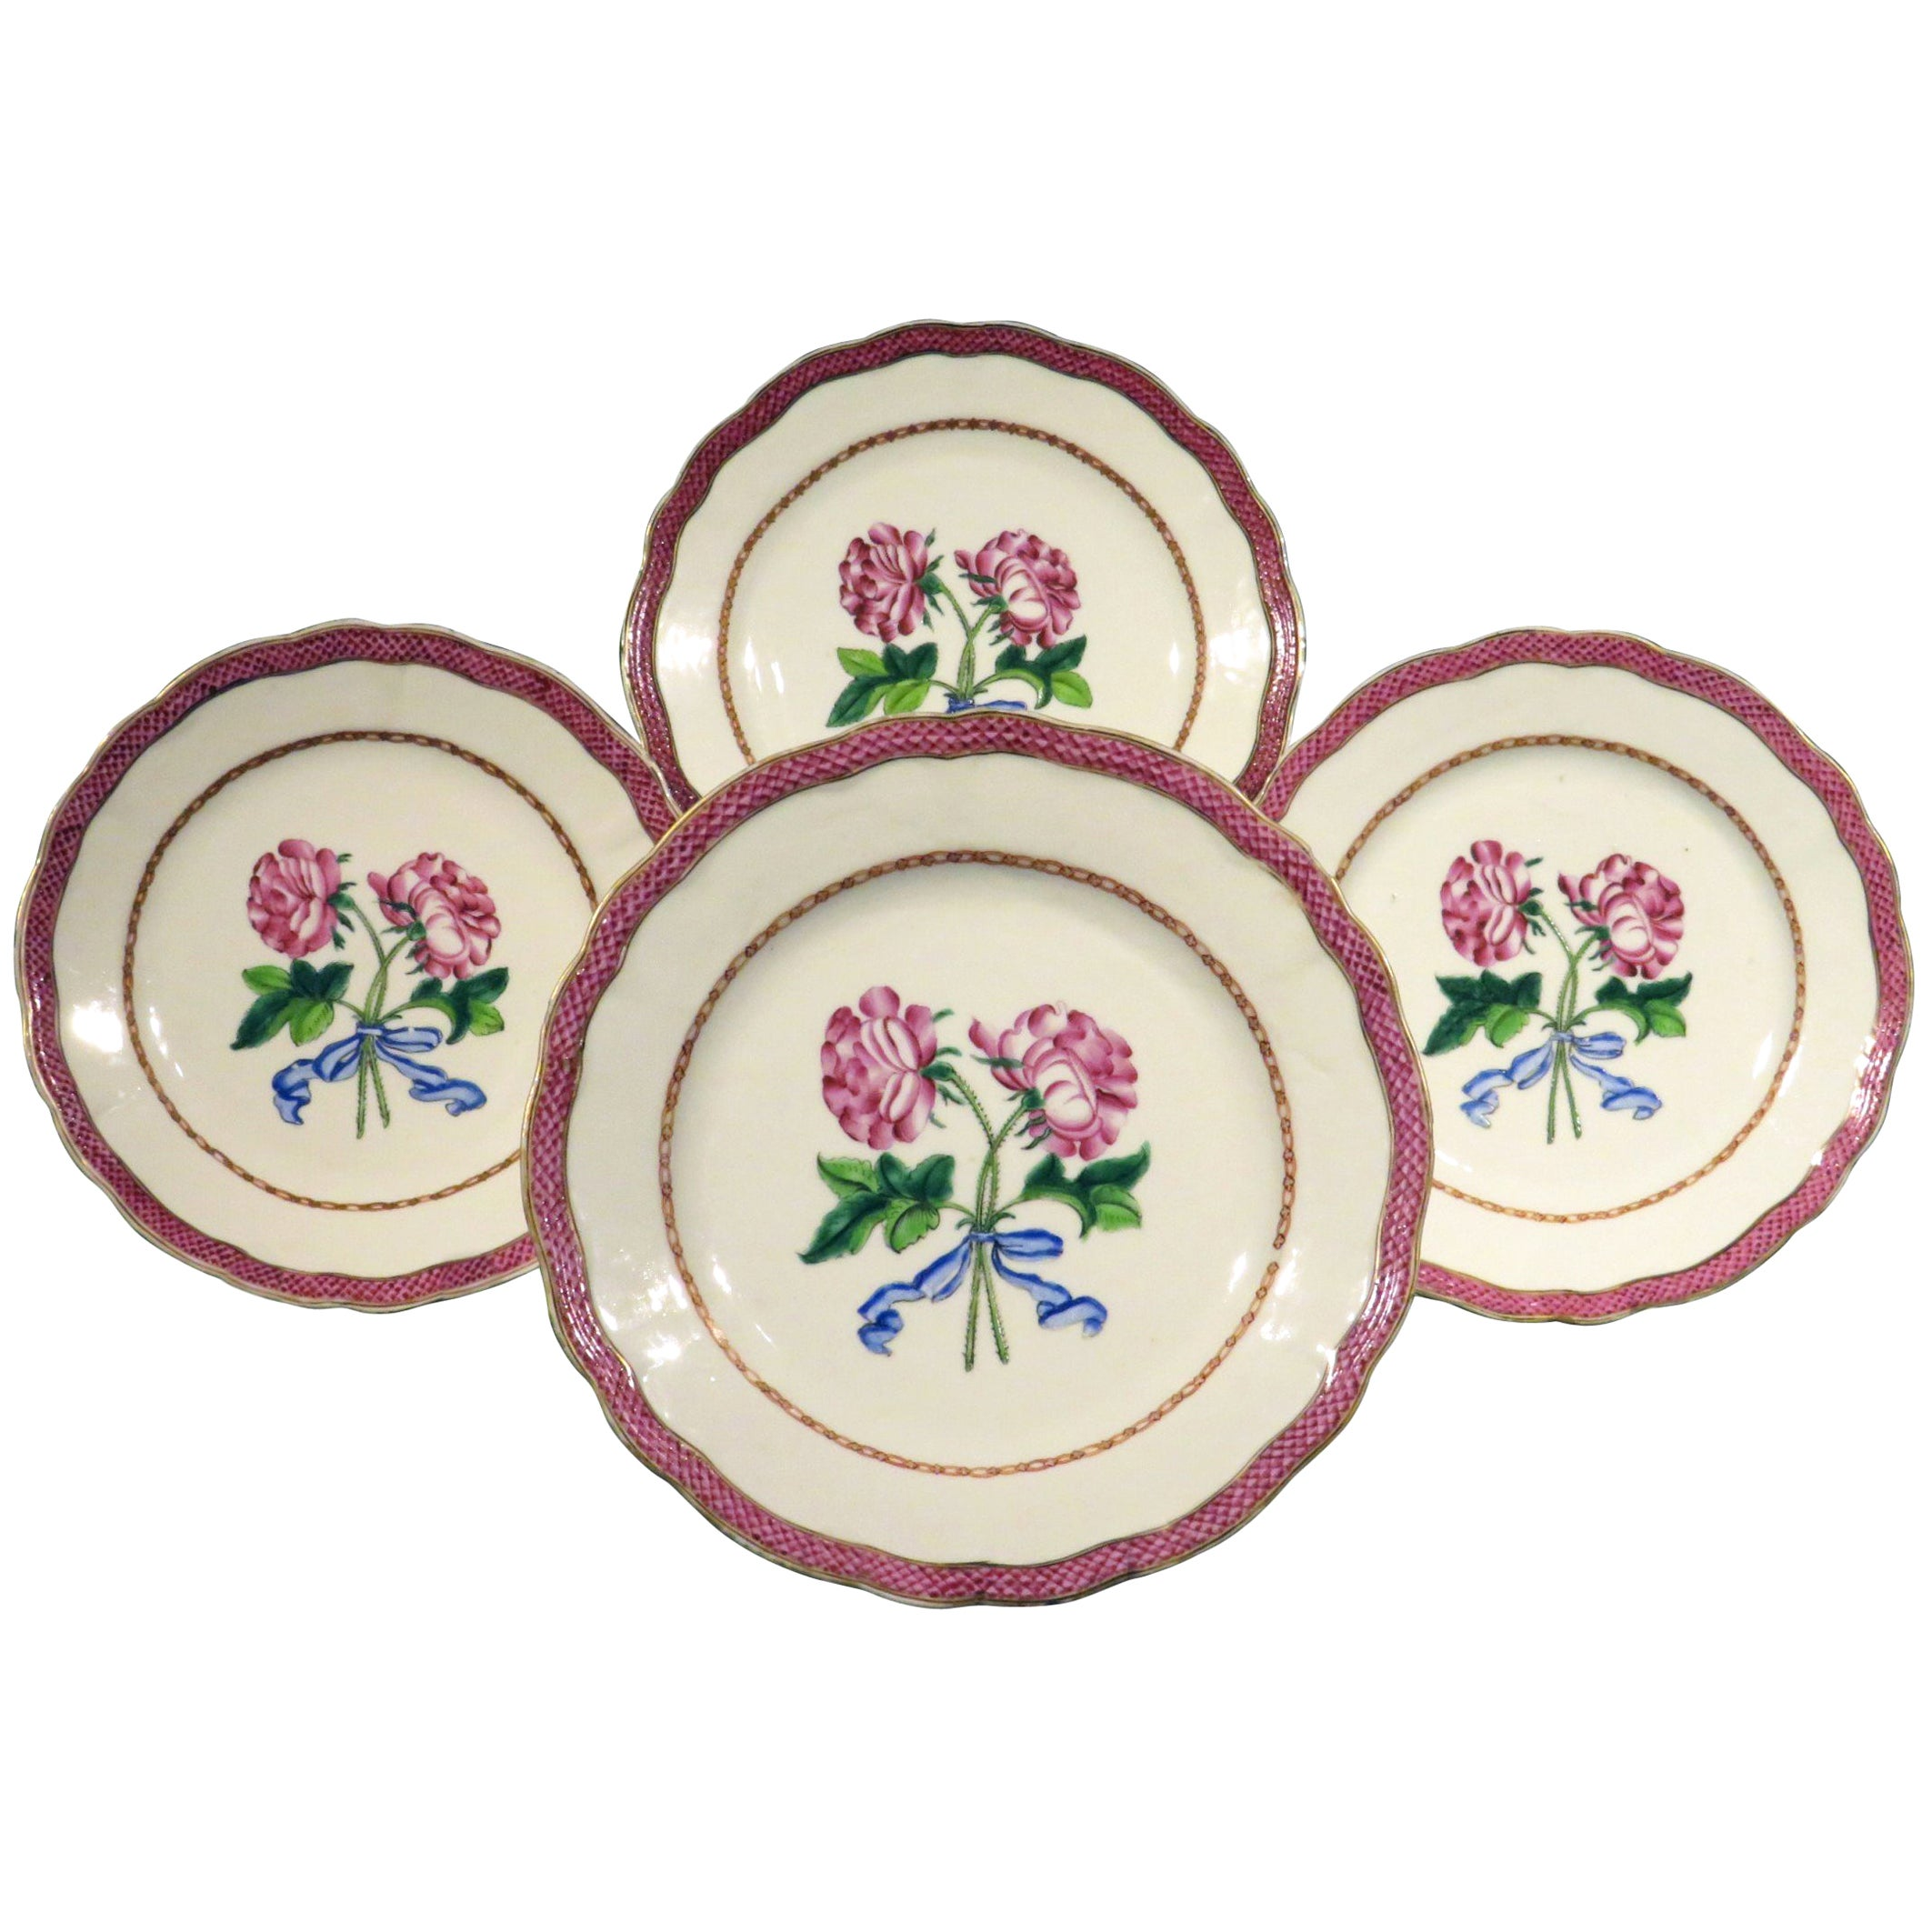 Four Chinese Export Famille Rose Botanical Plates, Qianlong Period, (1736-1795)